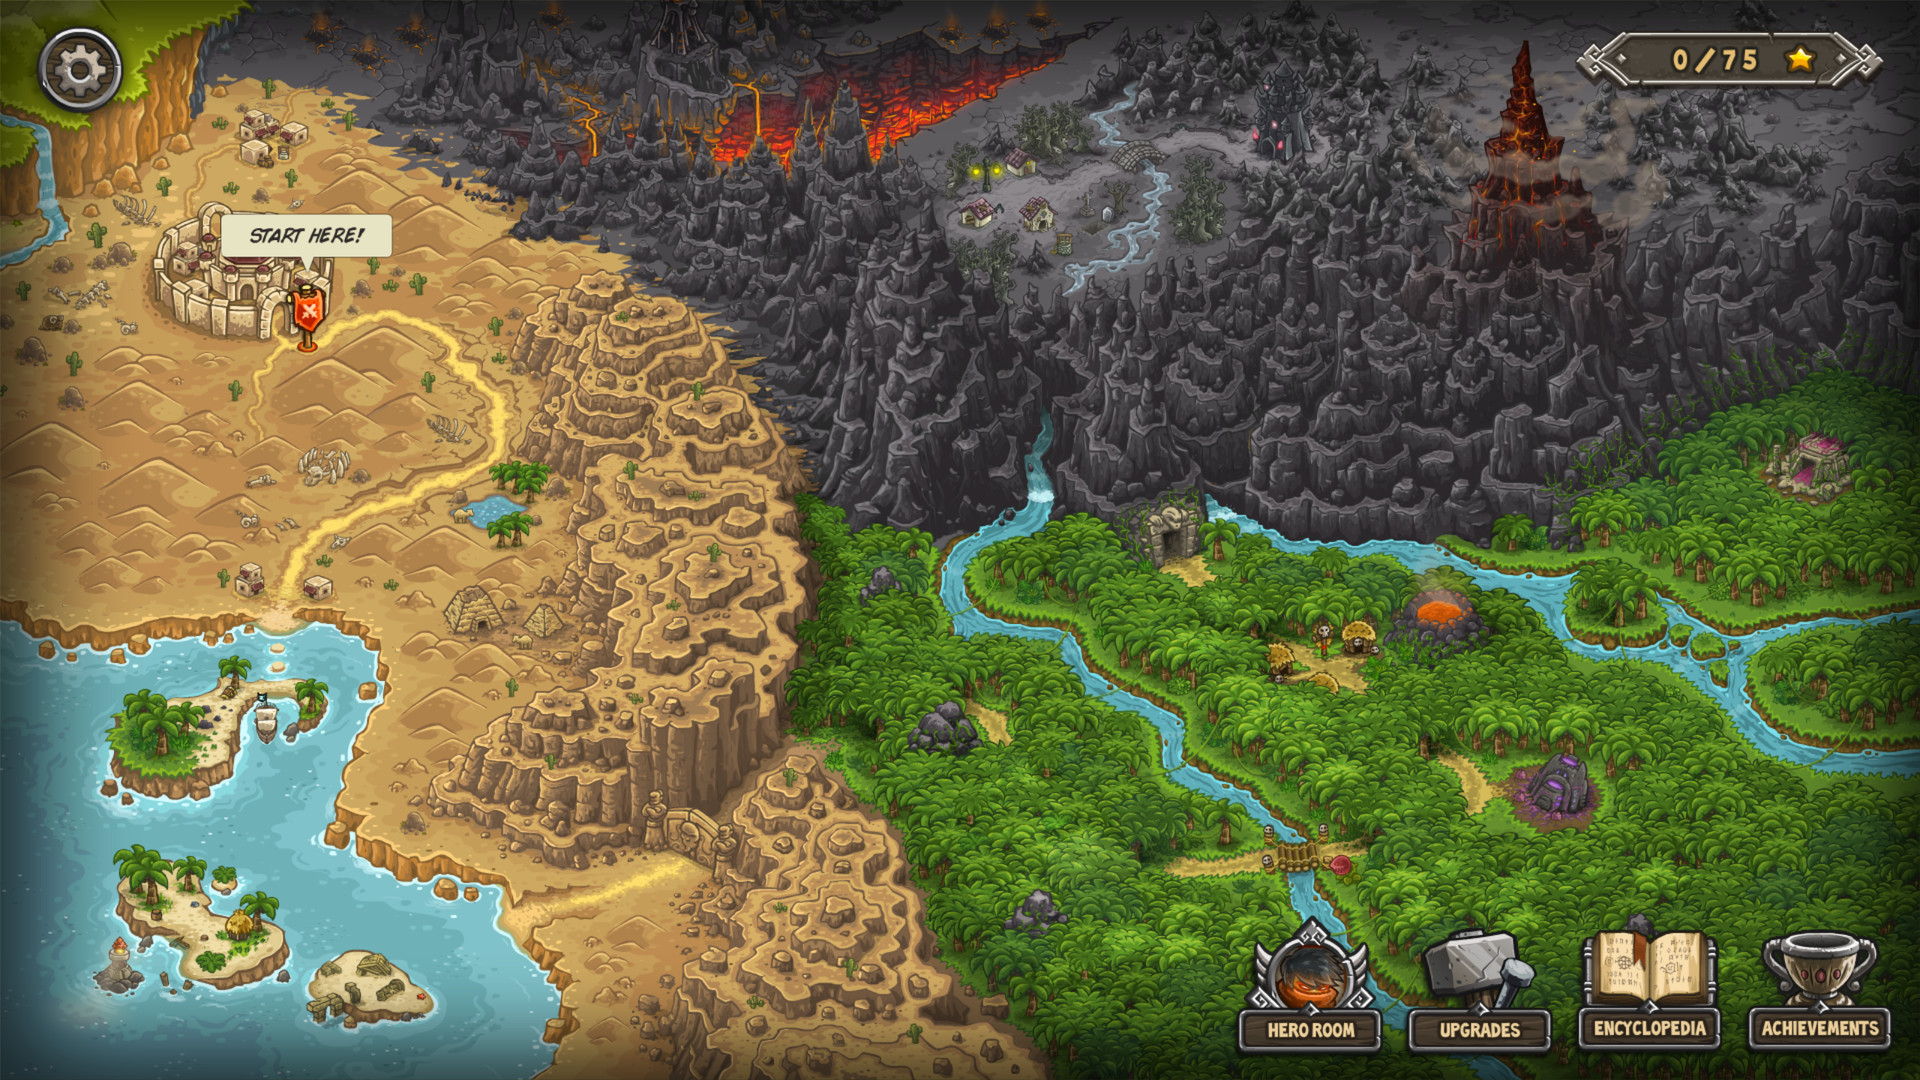 17 Best Tower Defense games on Steam as of 2019 - Slant